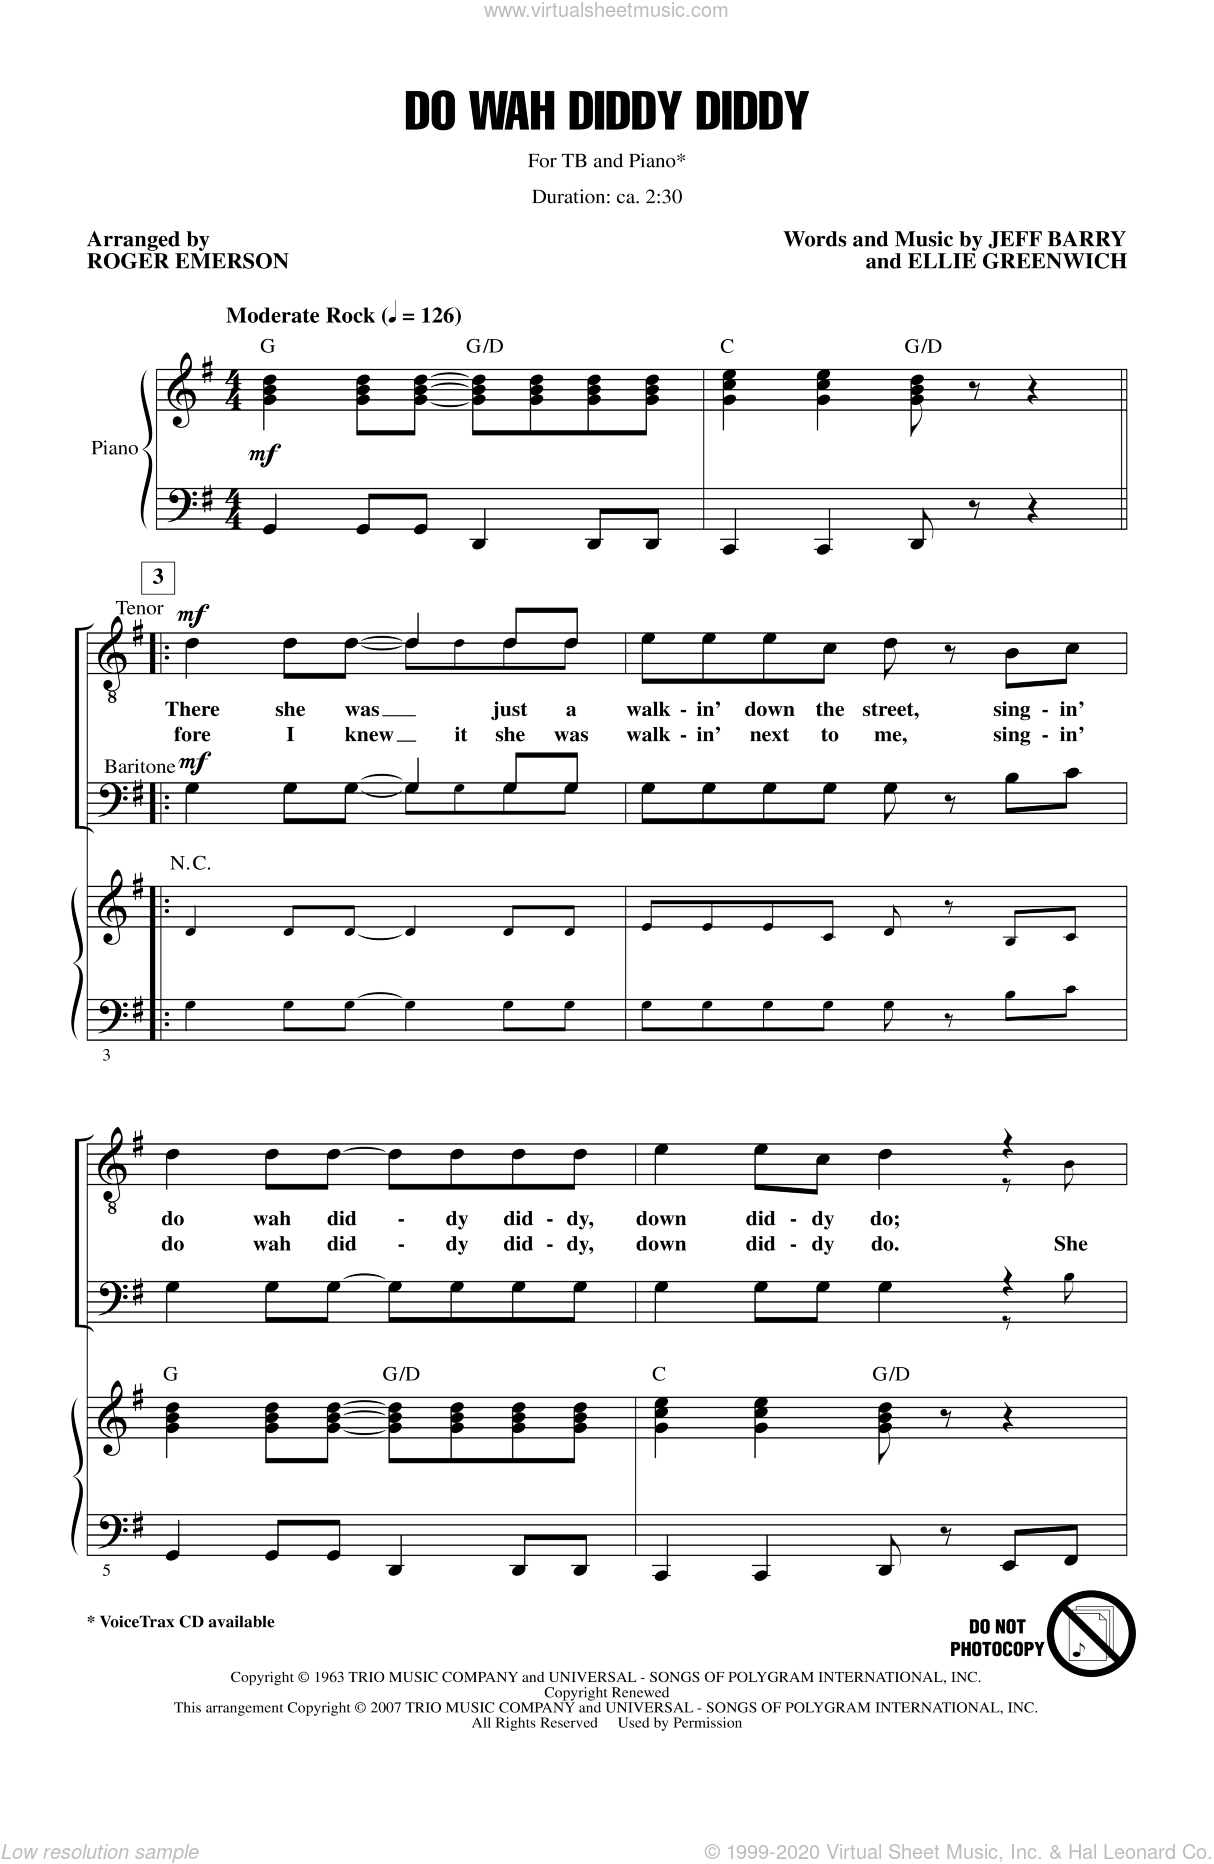 Do Wah Diddy Diddy sheet music for choir (TB: tenor, bass) by Roger Emerson, intermediate skill level